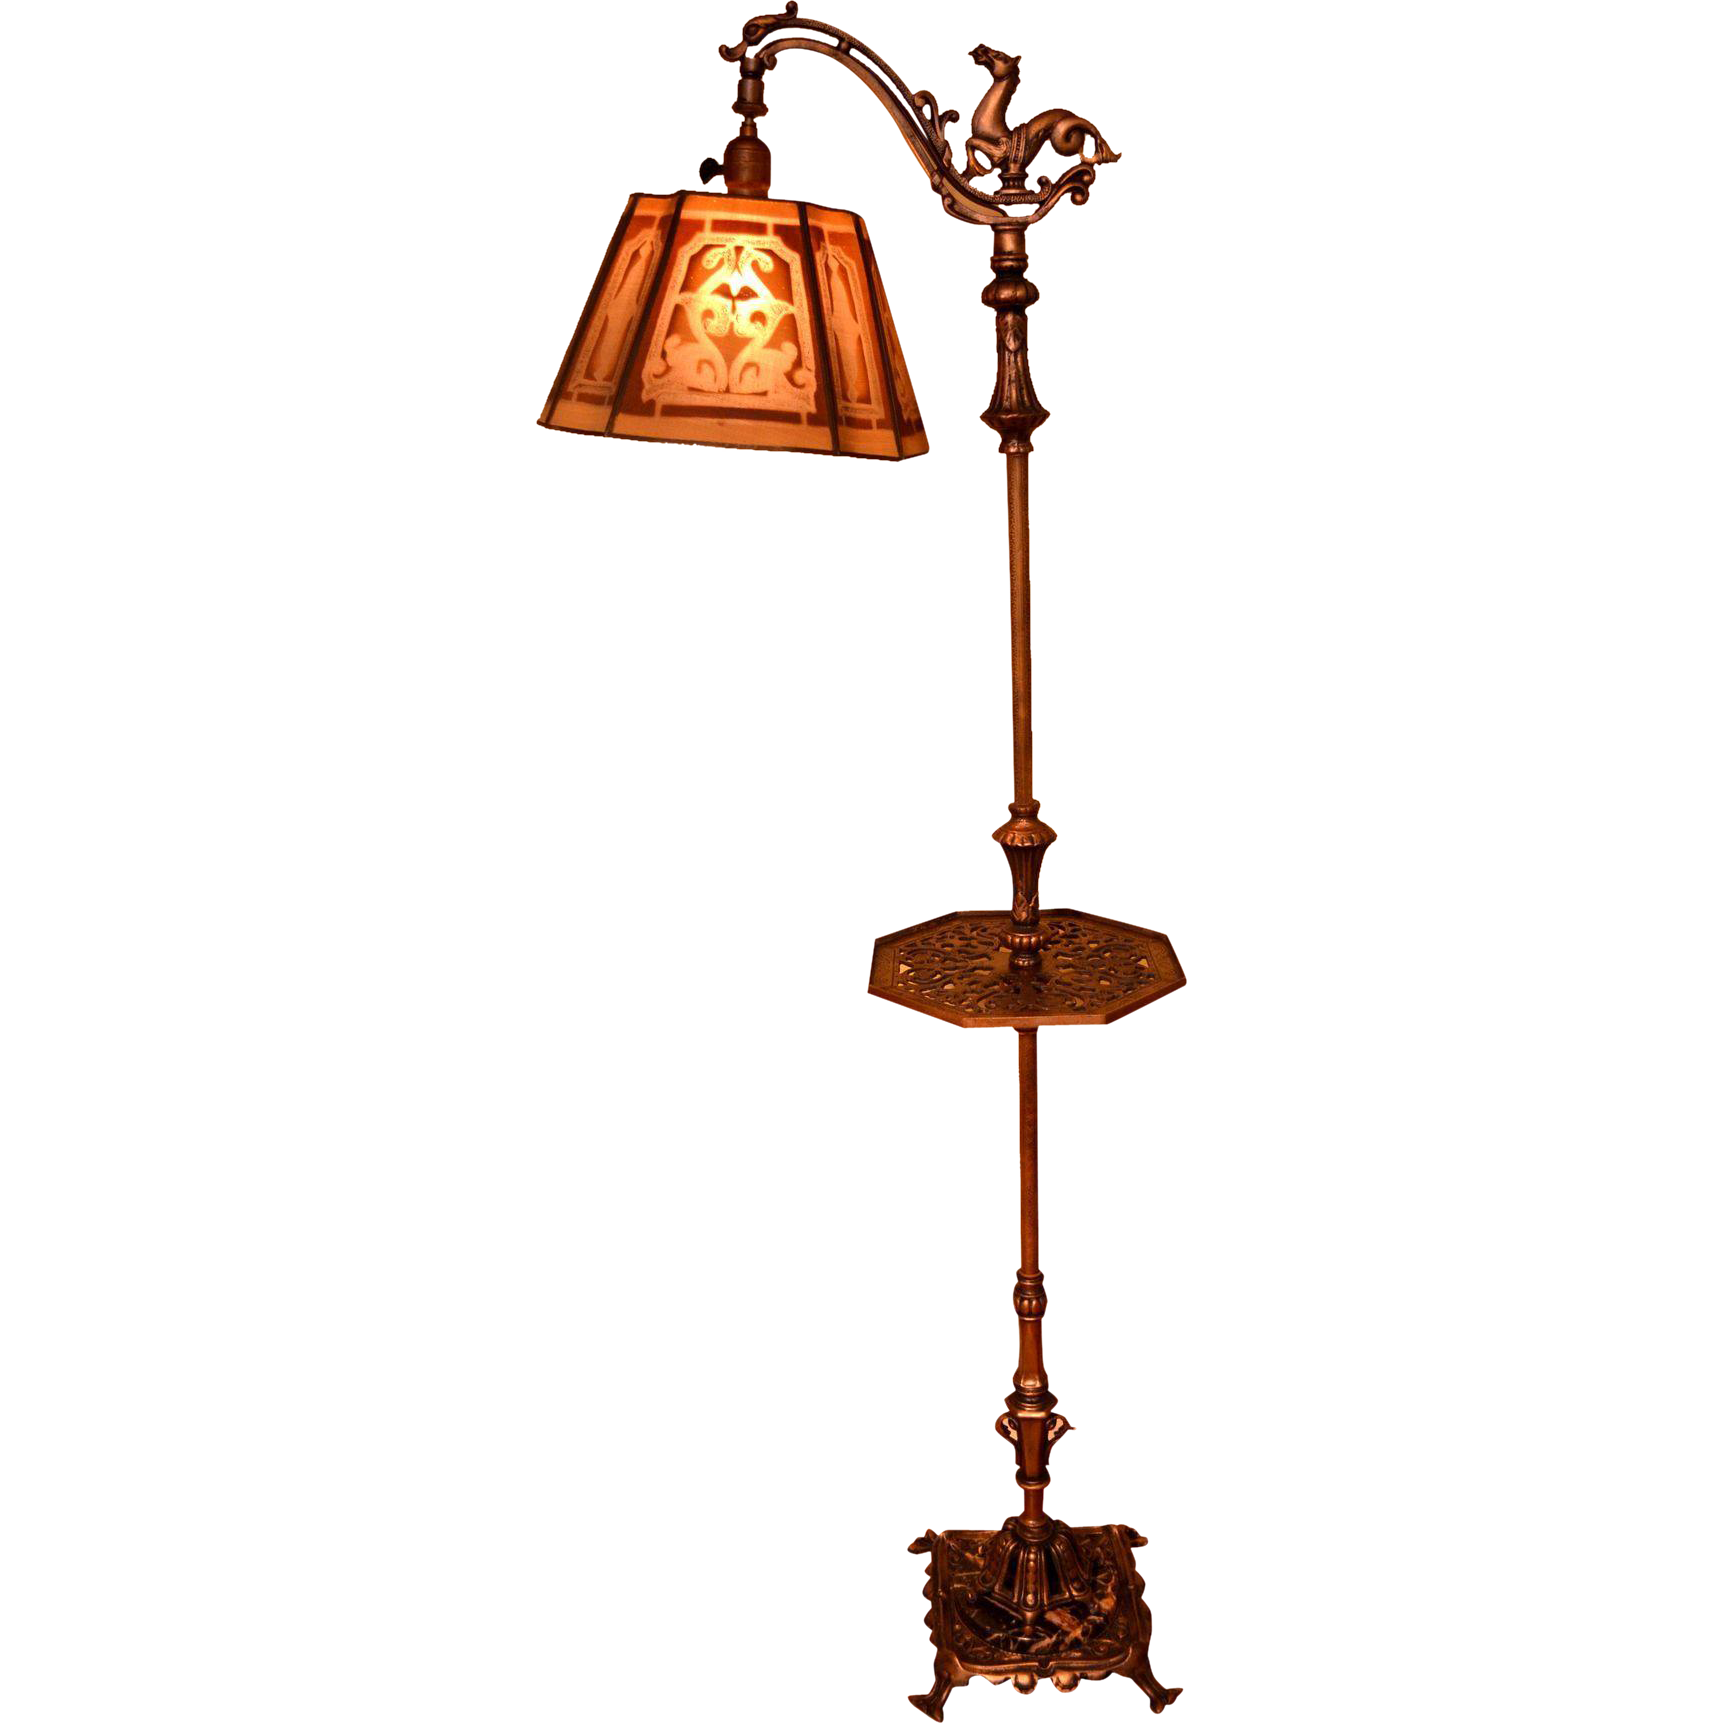 Rembrandt Floor Lamp With Horse Bridge And Screen Mesh Shade